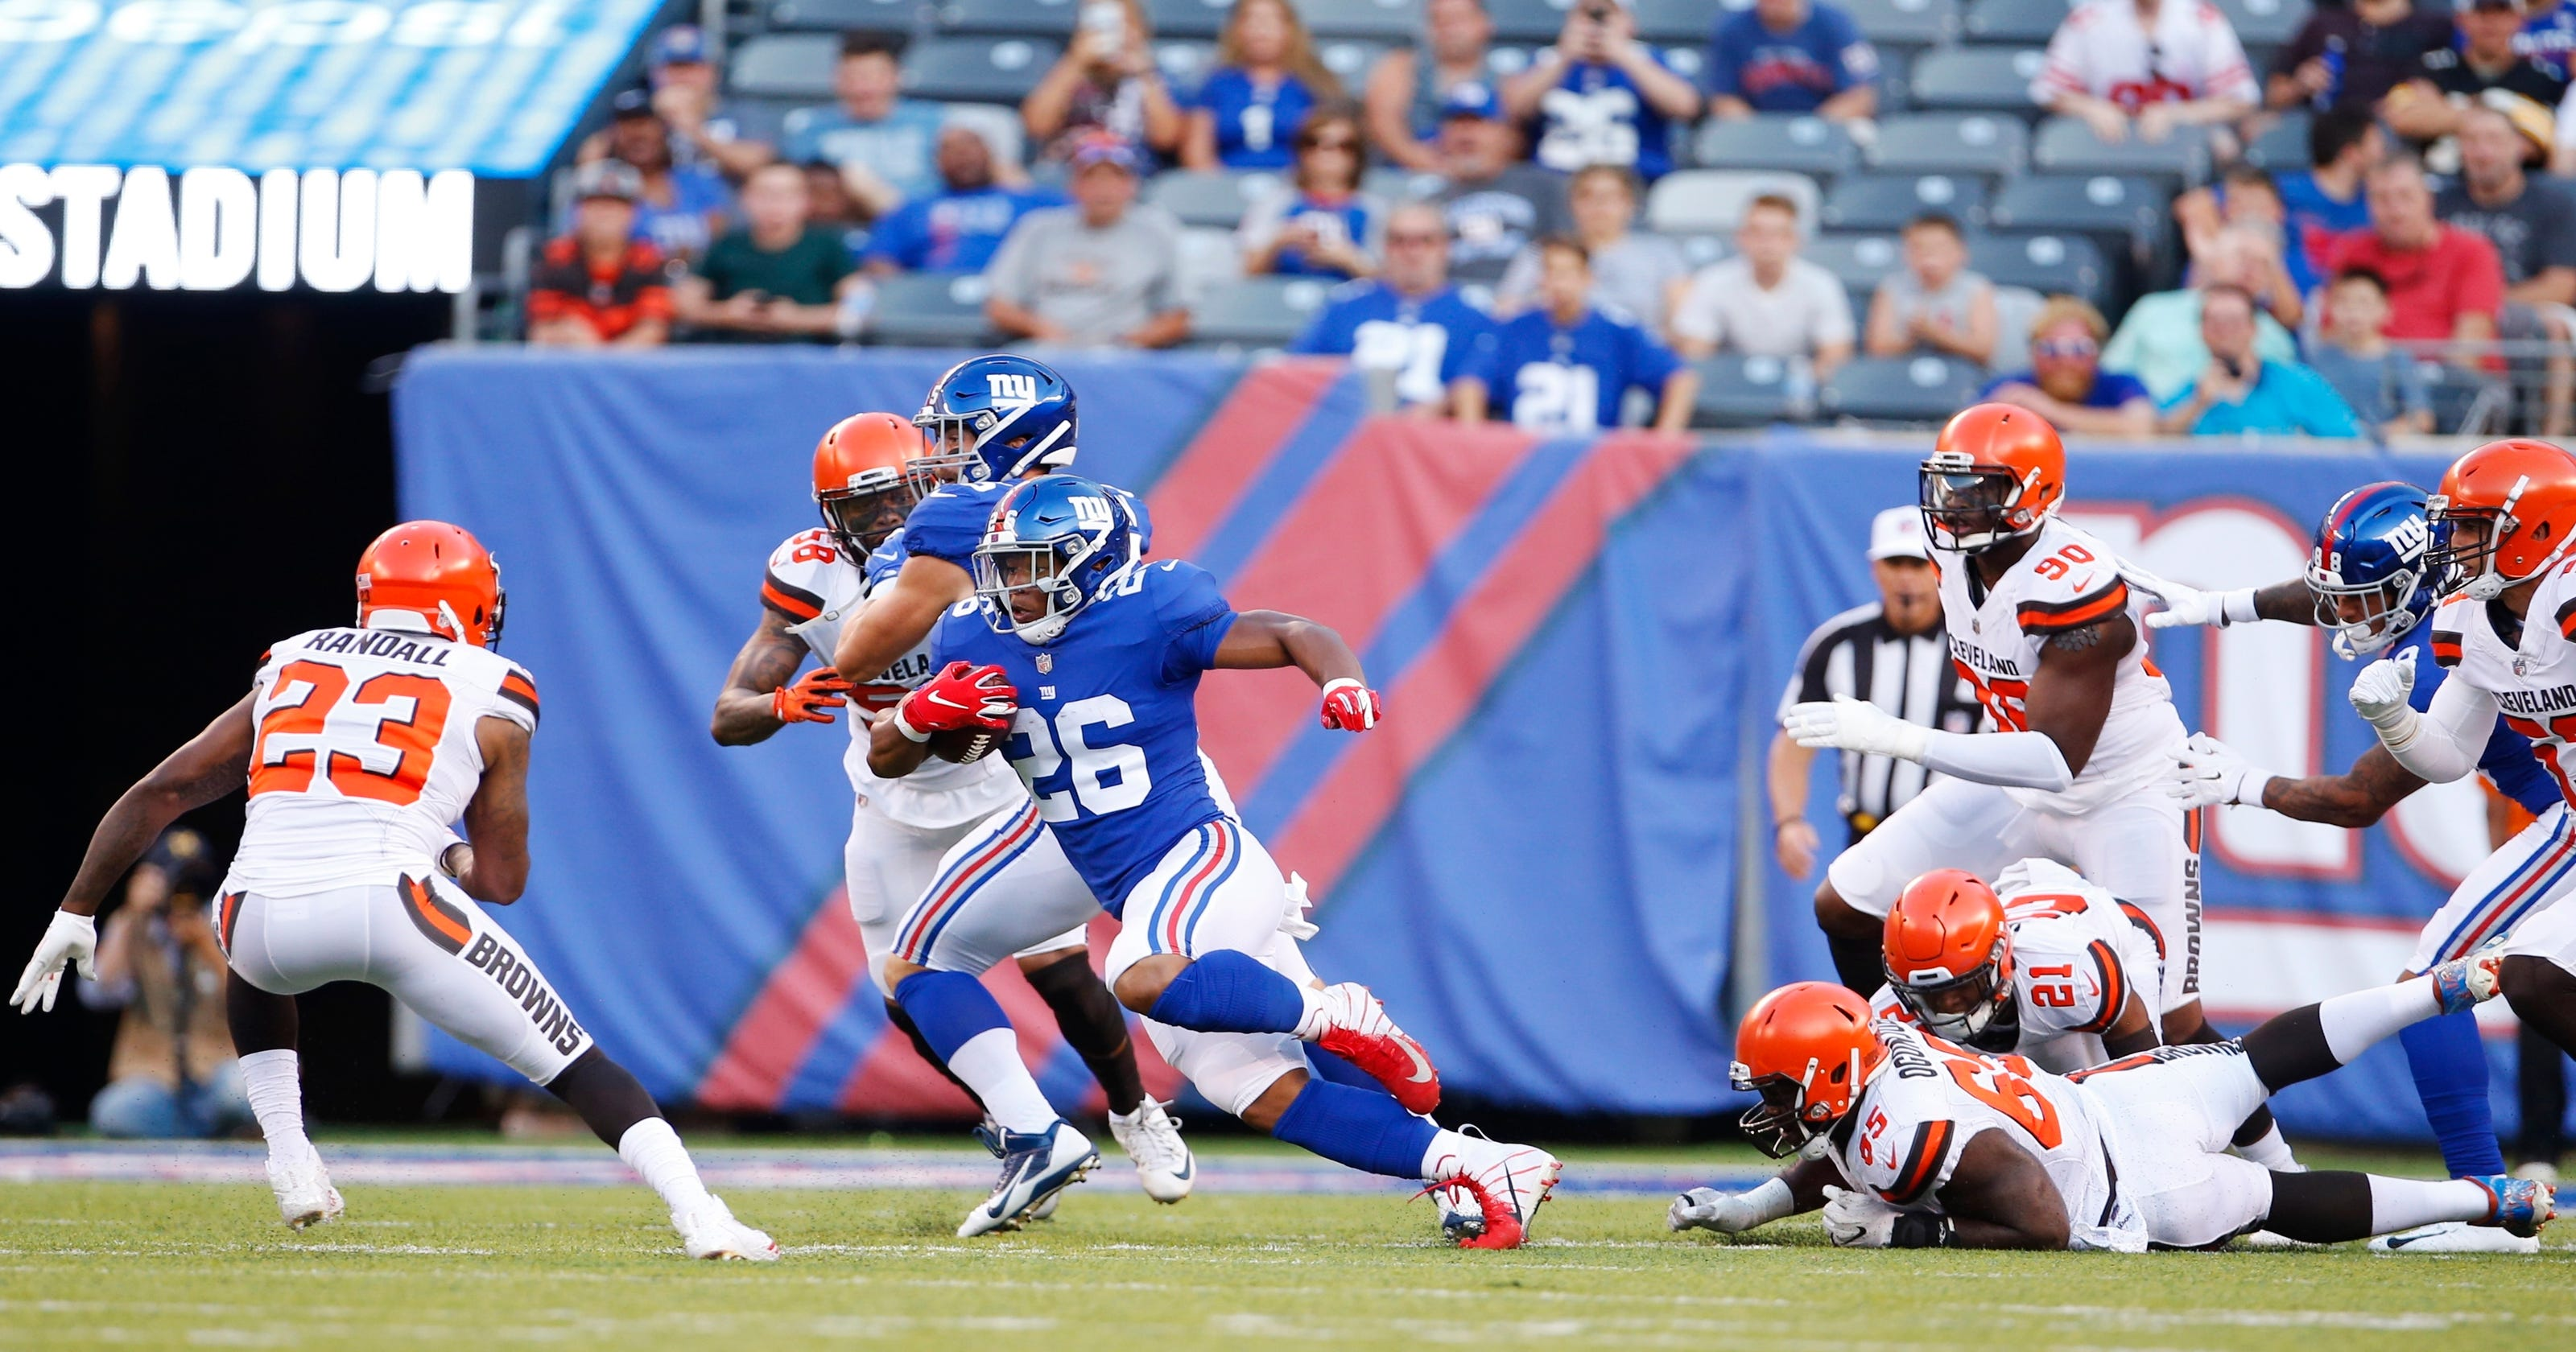 1fd66d9d5 Mayfield and Barkley have strong debuts in preseason opener